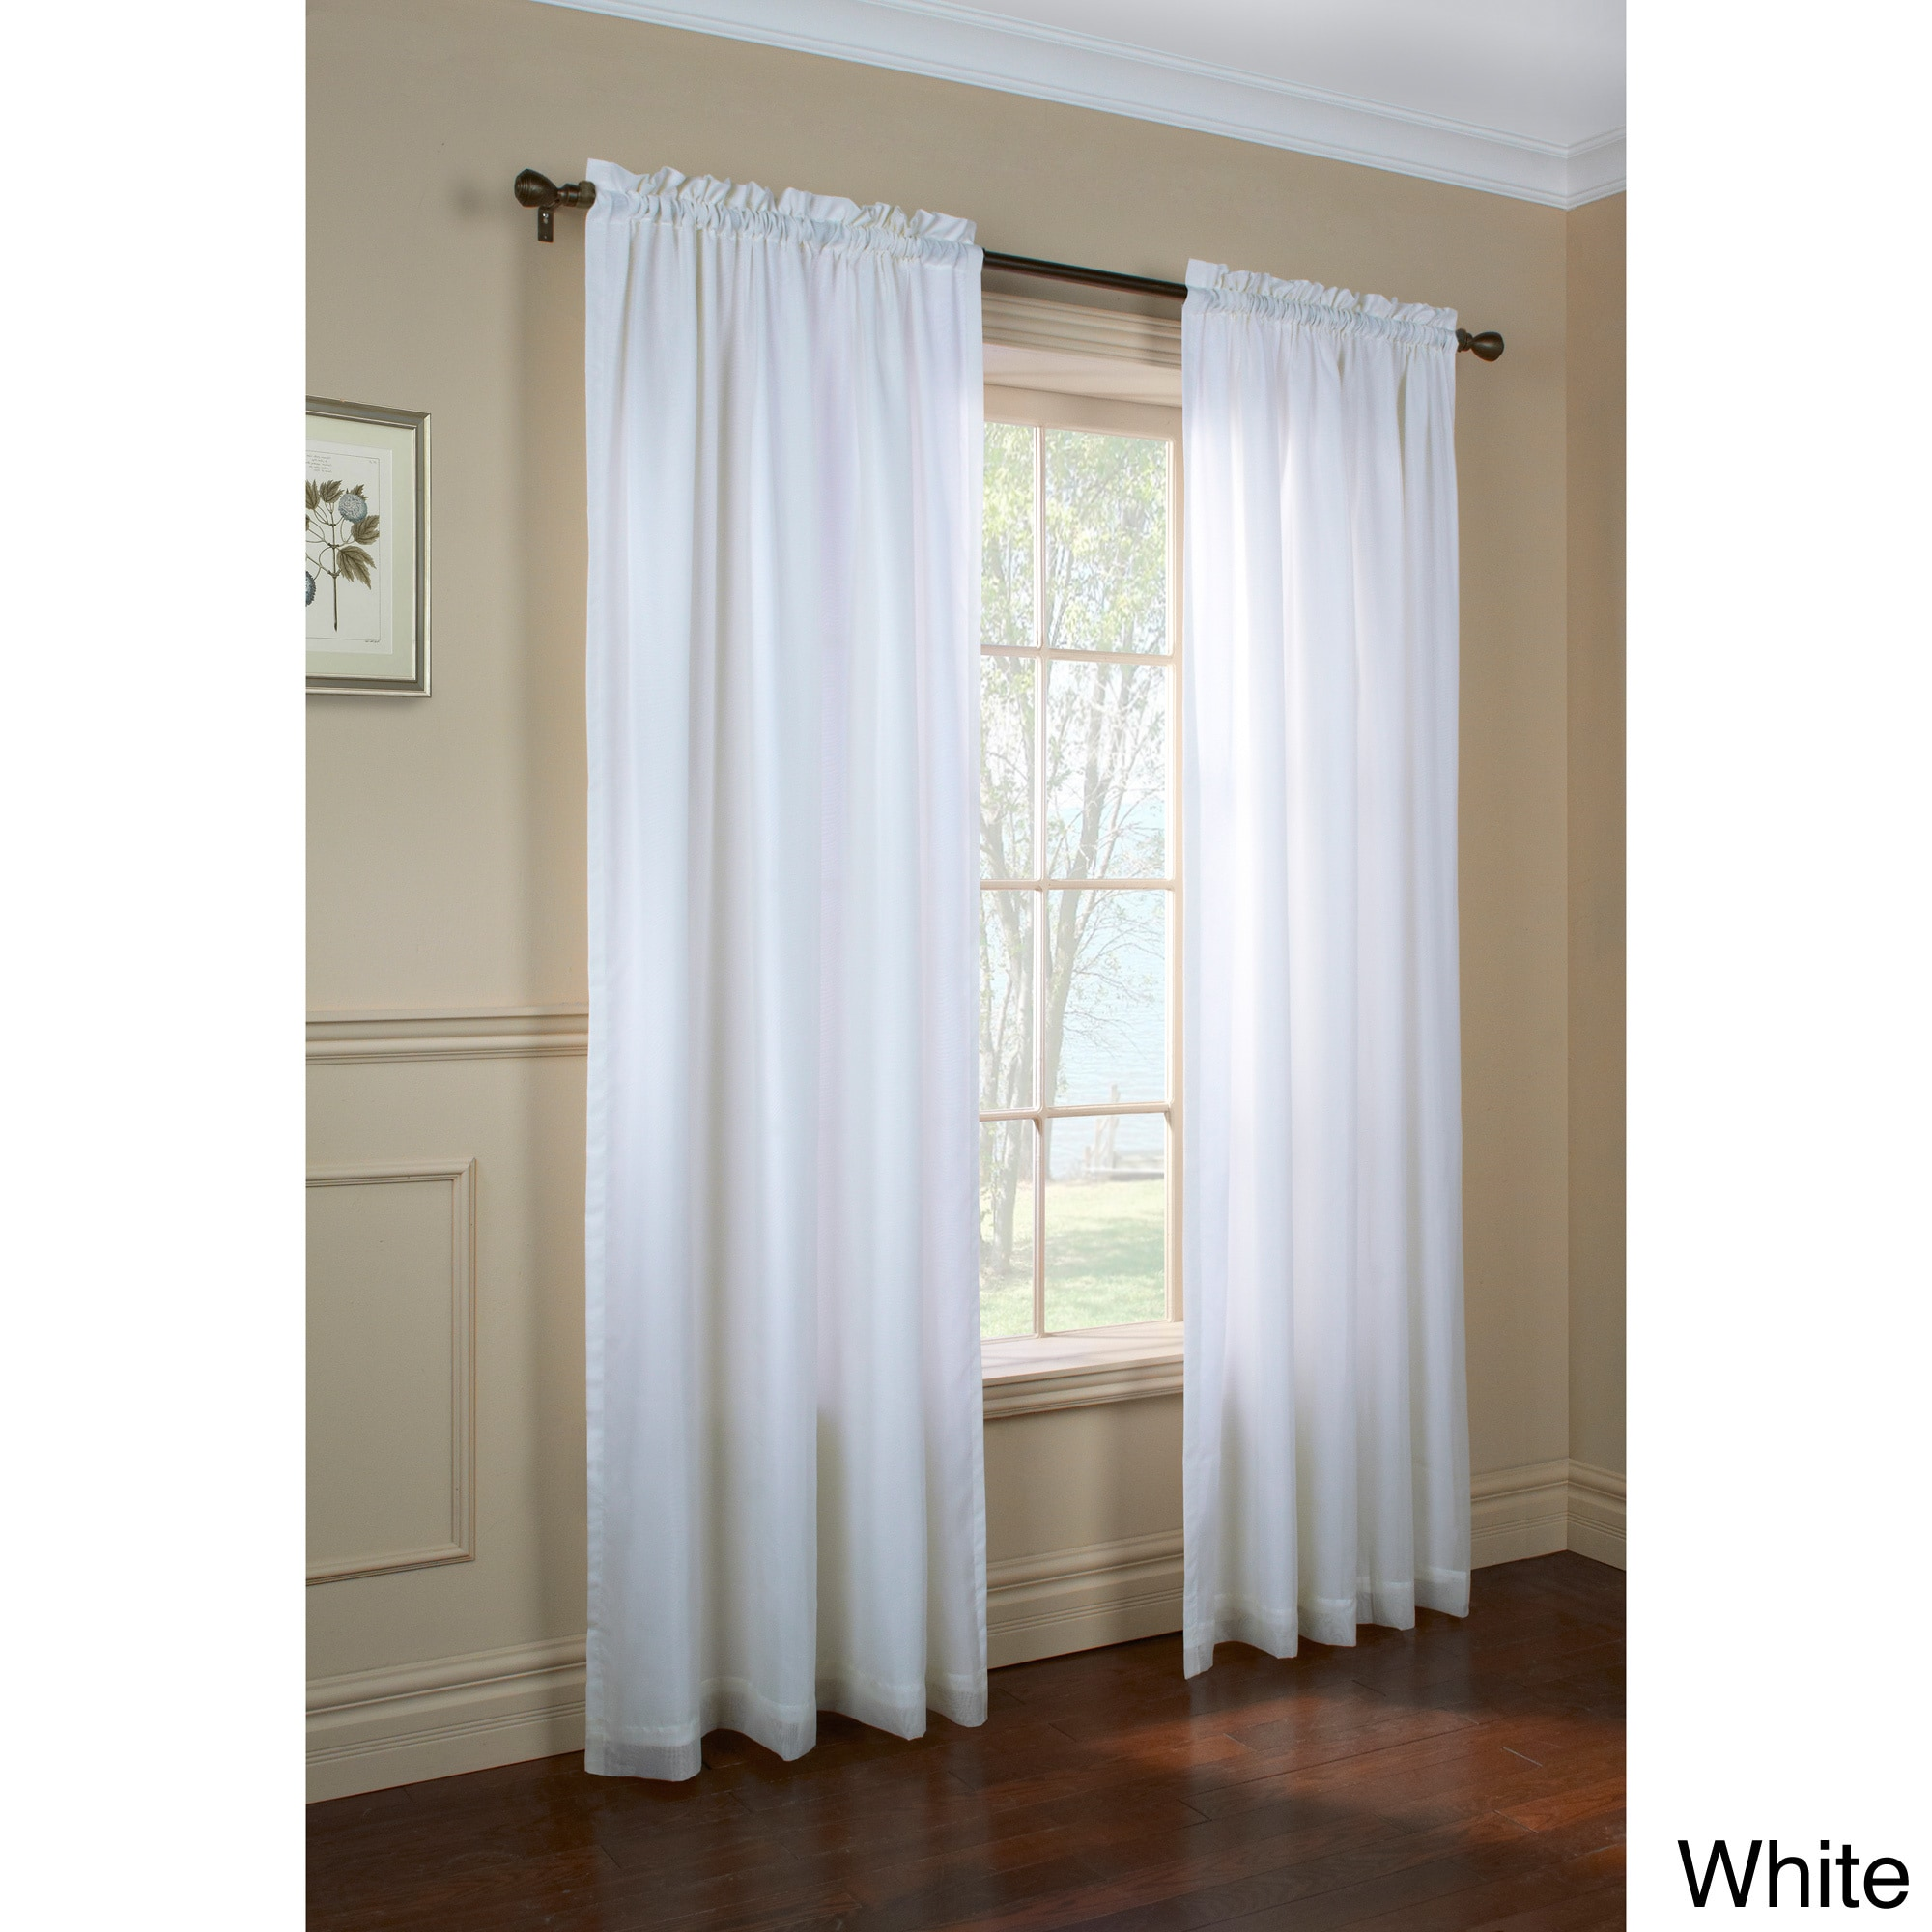 Rhaspody Lined European Voile Rod Pocket Top Curtain Panel